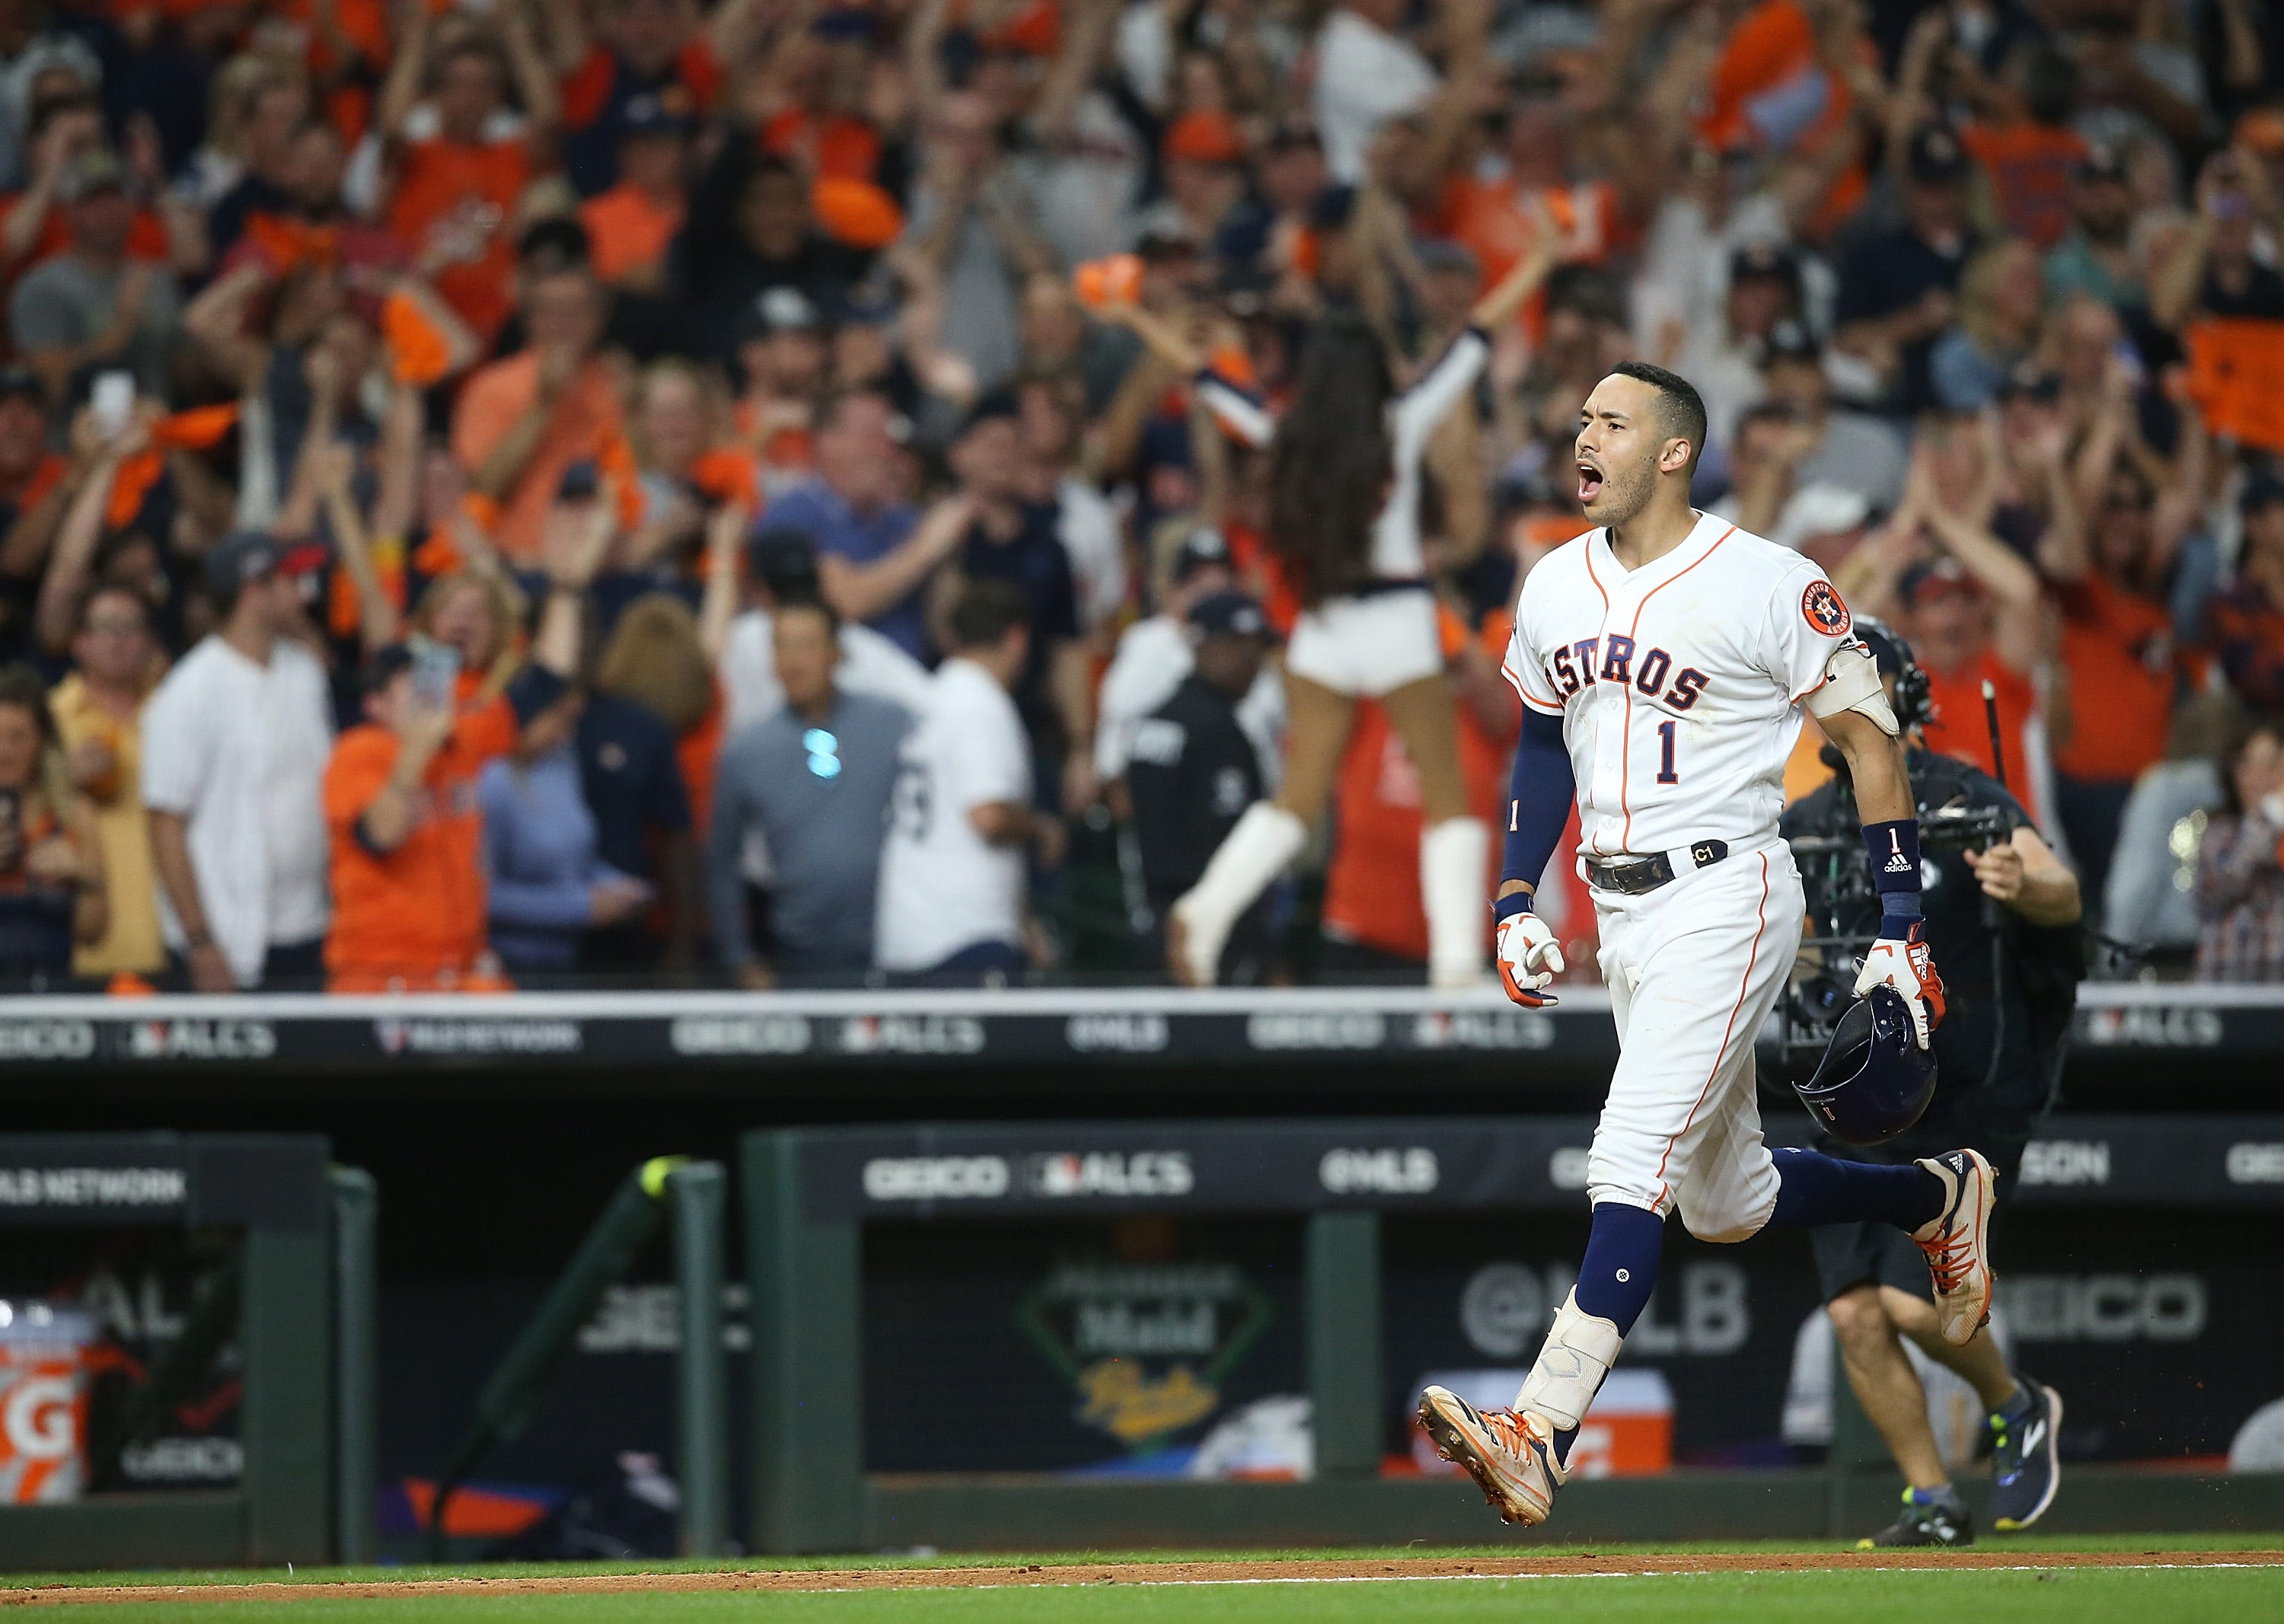 'I don't even know what I did': Carlos Correa lost his mind while saving Astros' season